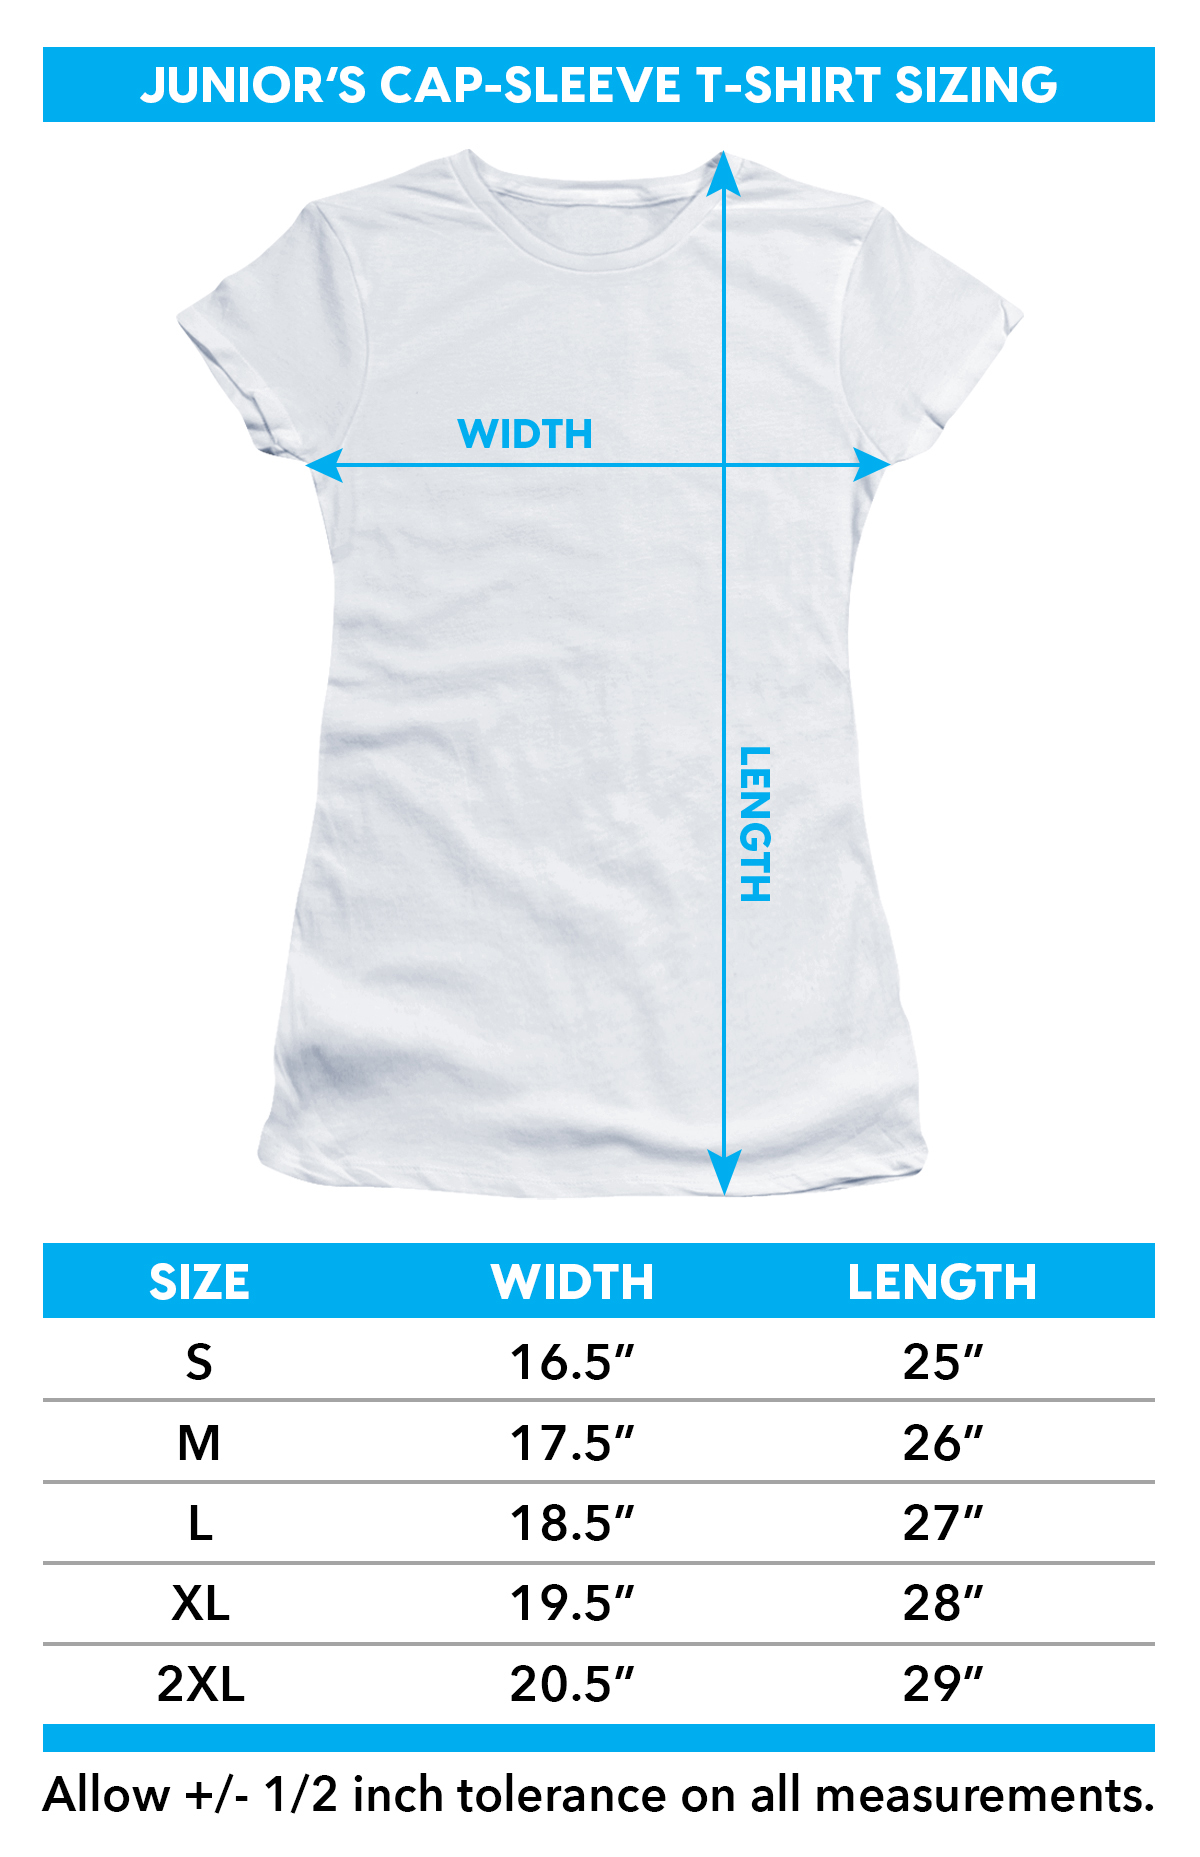 Girls sizing chart for The Shining Girls T-Shirt - Come Out Come Out TRV-WBM559-JS